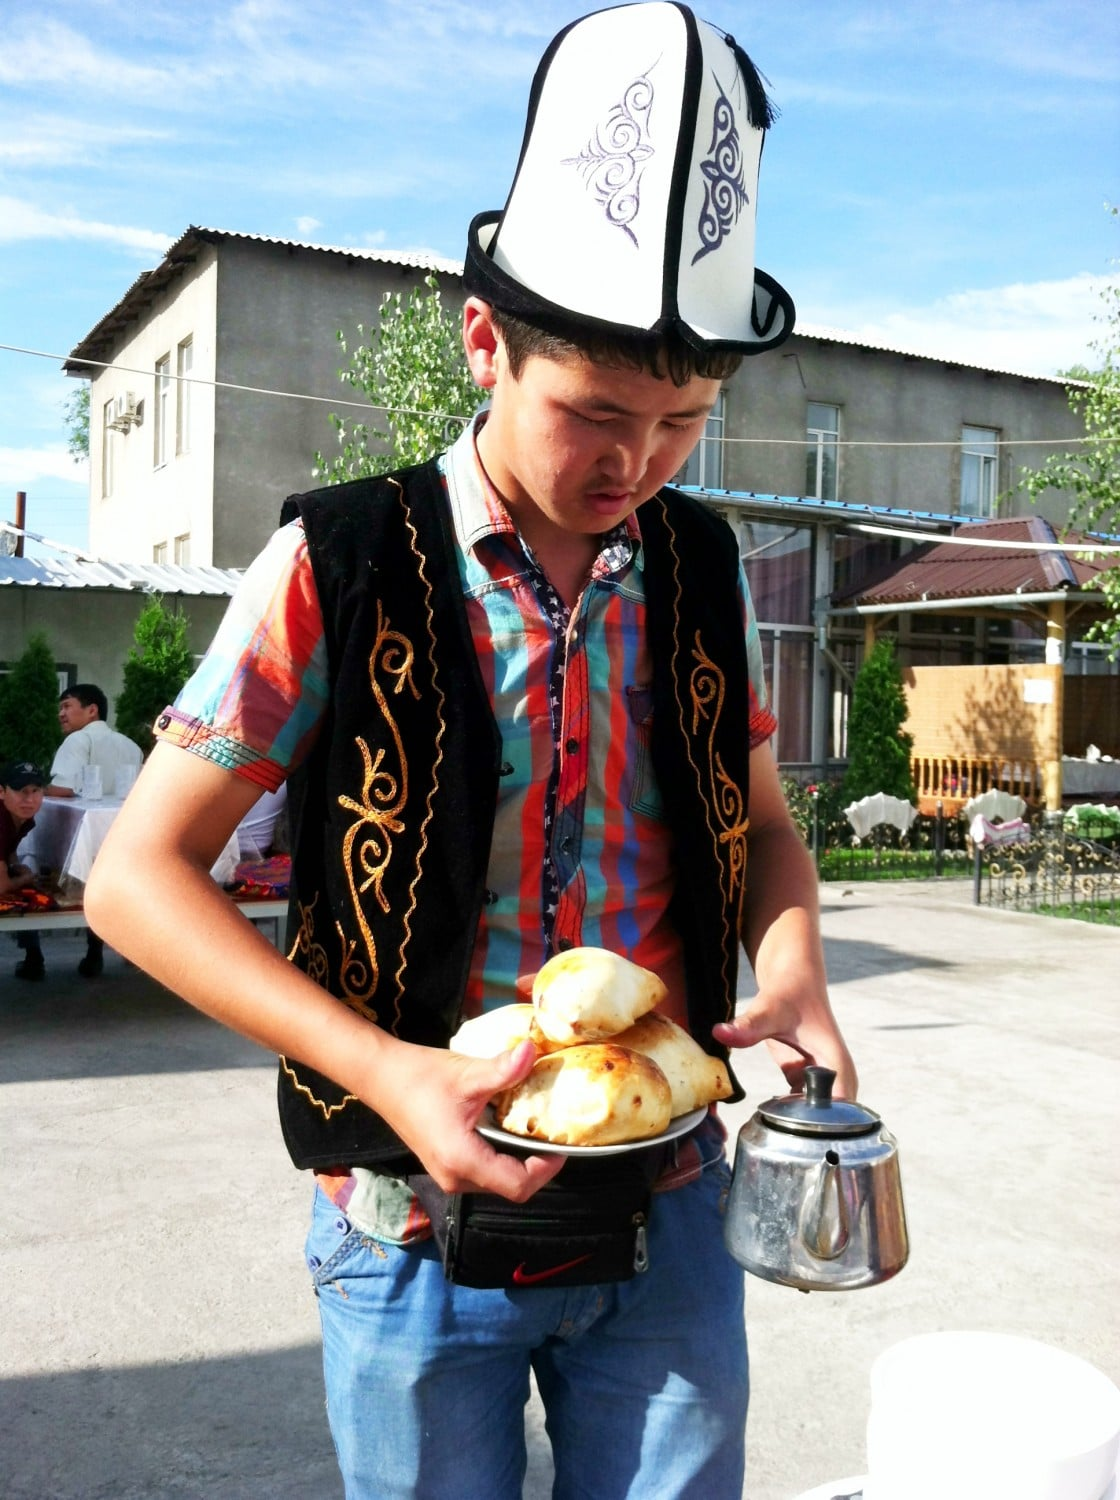 Waiter in a traditional Kyrgyz hat called kalpak serving us spicy and non-spicy samsa